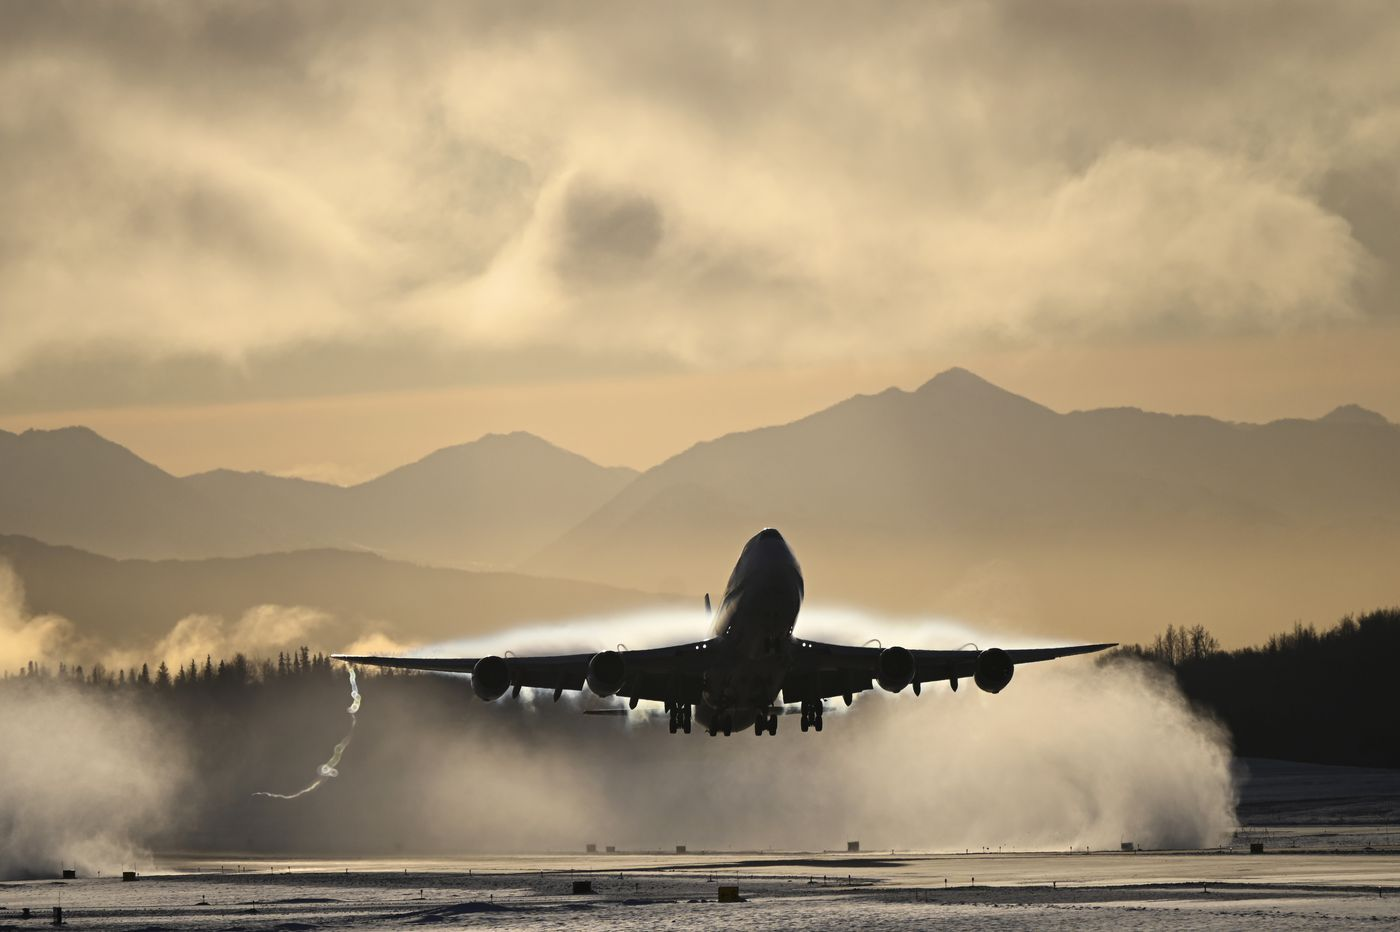 NOVEMBER 22. A vapor cloud forms over the wings as a Cargolux jet lifts off from Ted Stevens Anchorage International Airport. Cargolux is headquartered in Luxembourg. (Marc Lester / ADN)